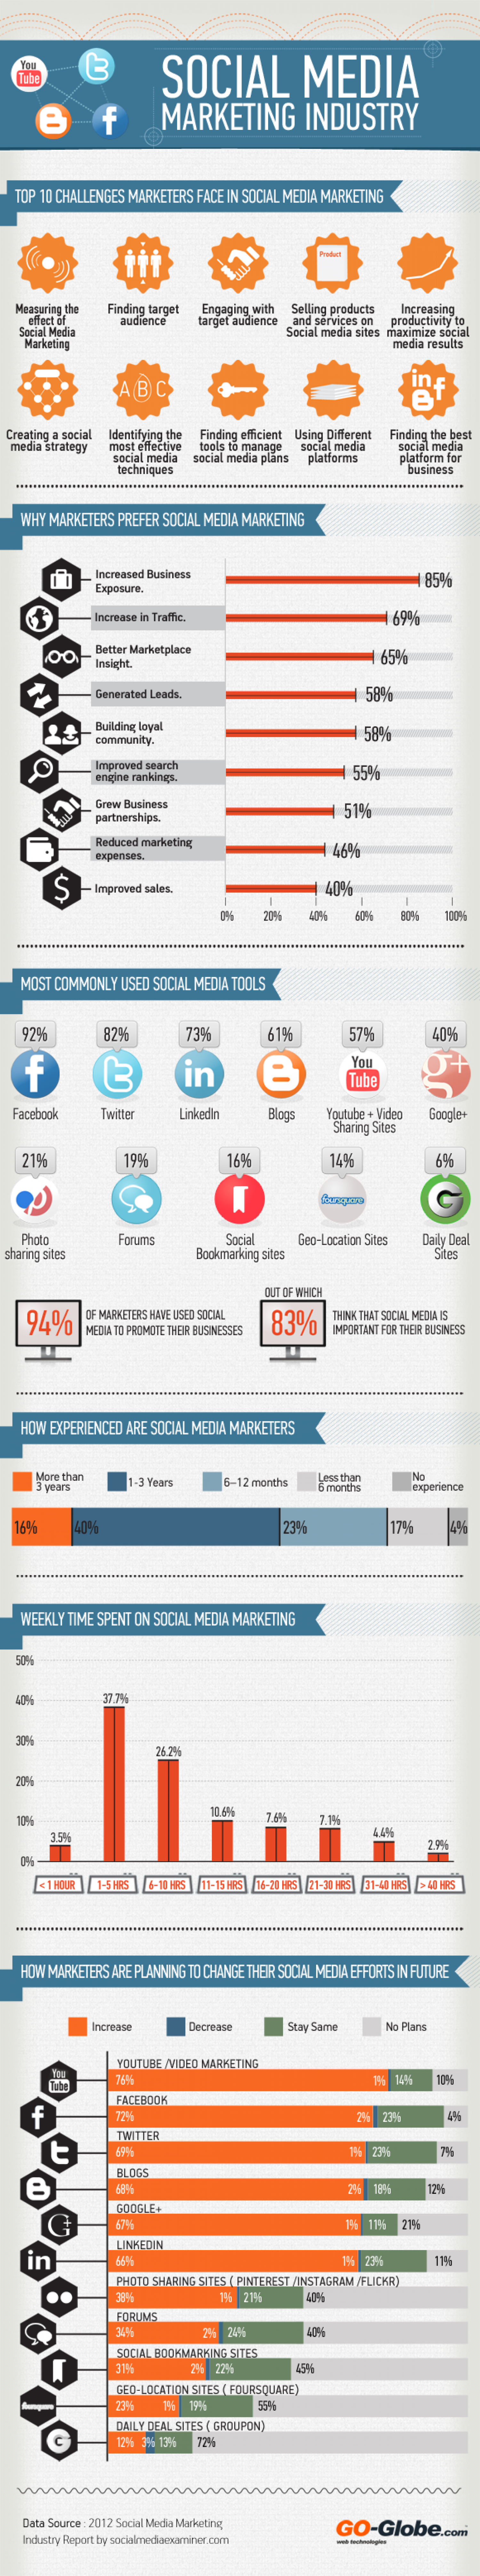 Social Media Marketing Industry Infographic